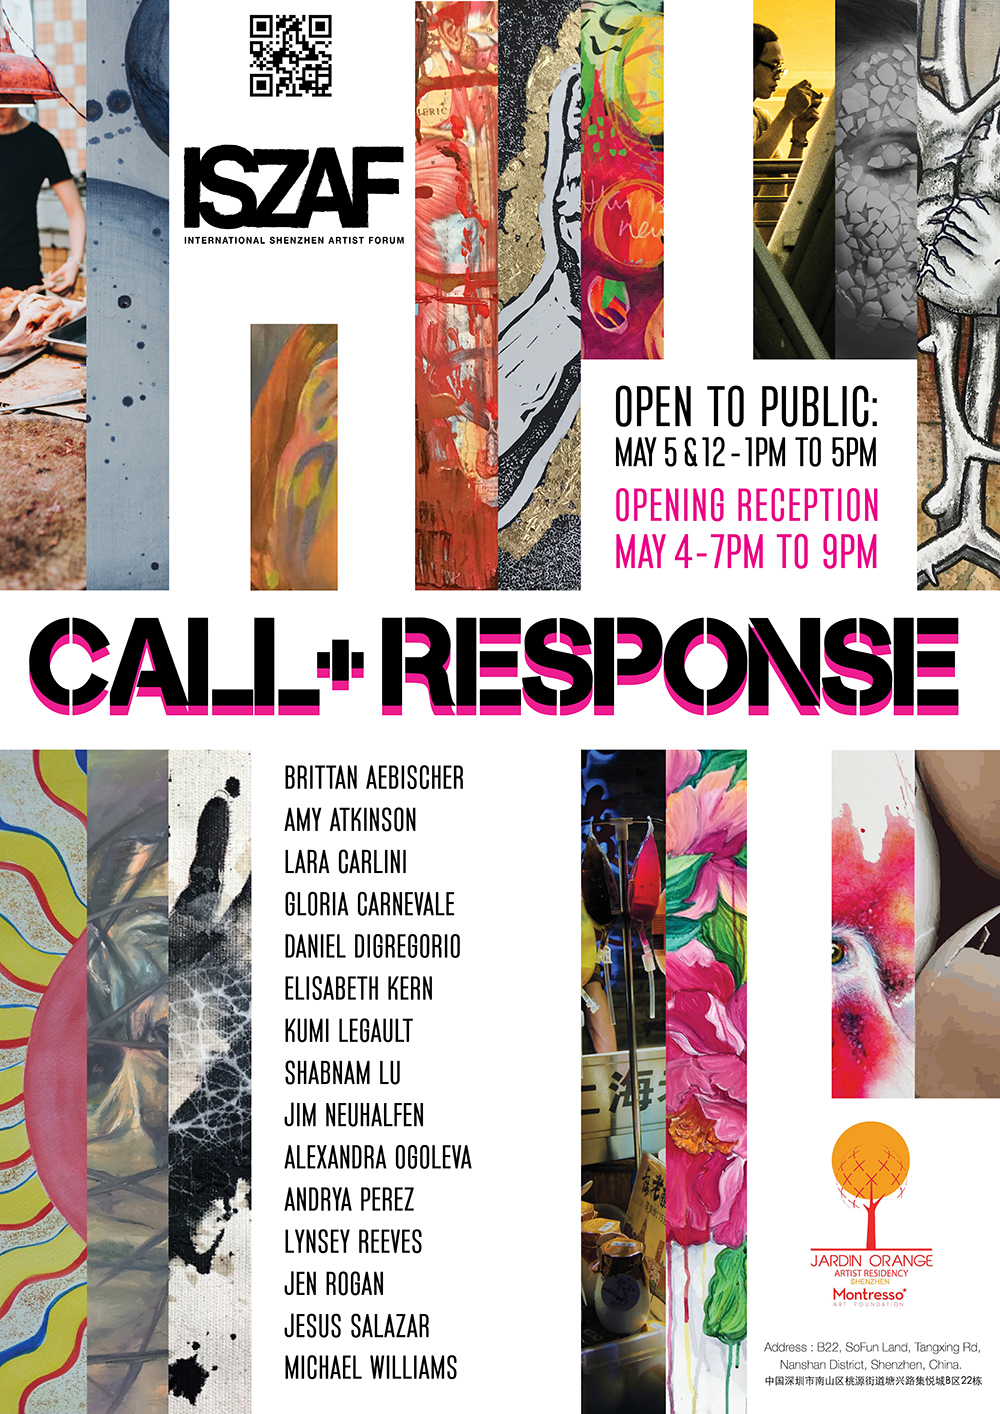 Call + Response Exhibition Poster. 2018.